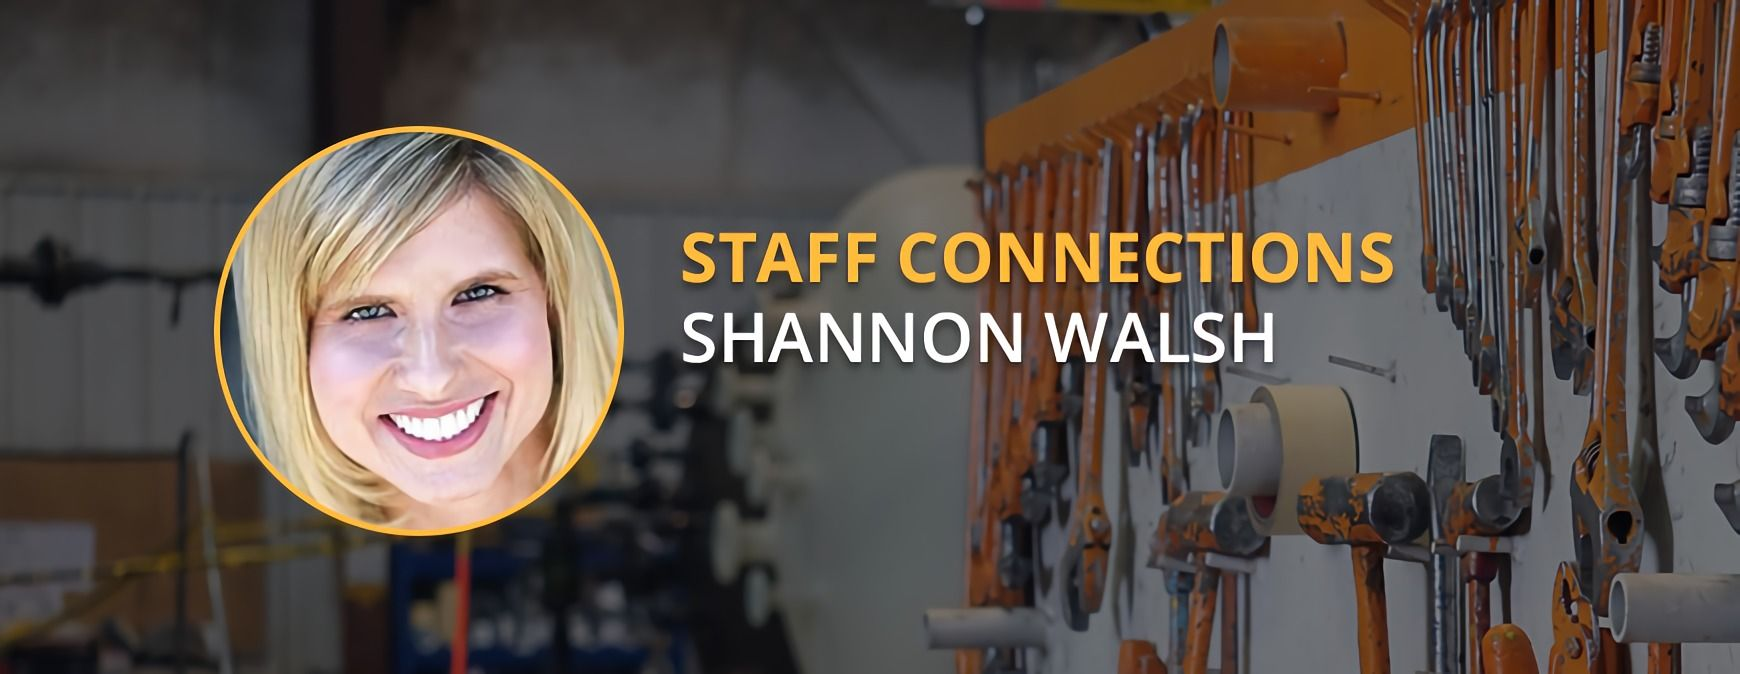 shannon walsh staff connections